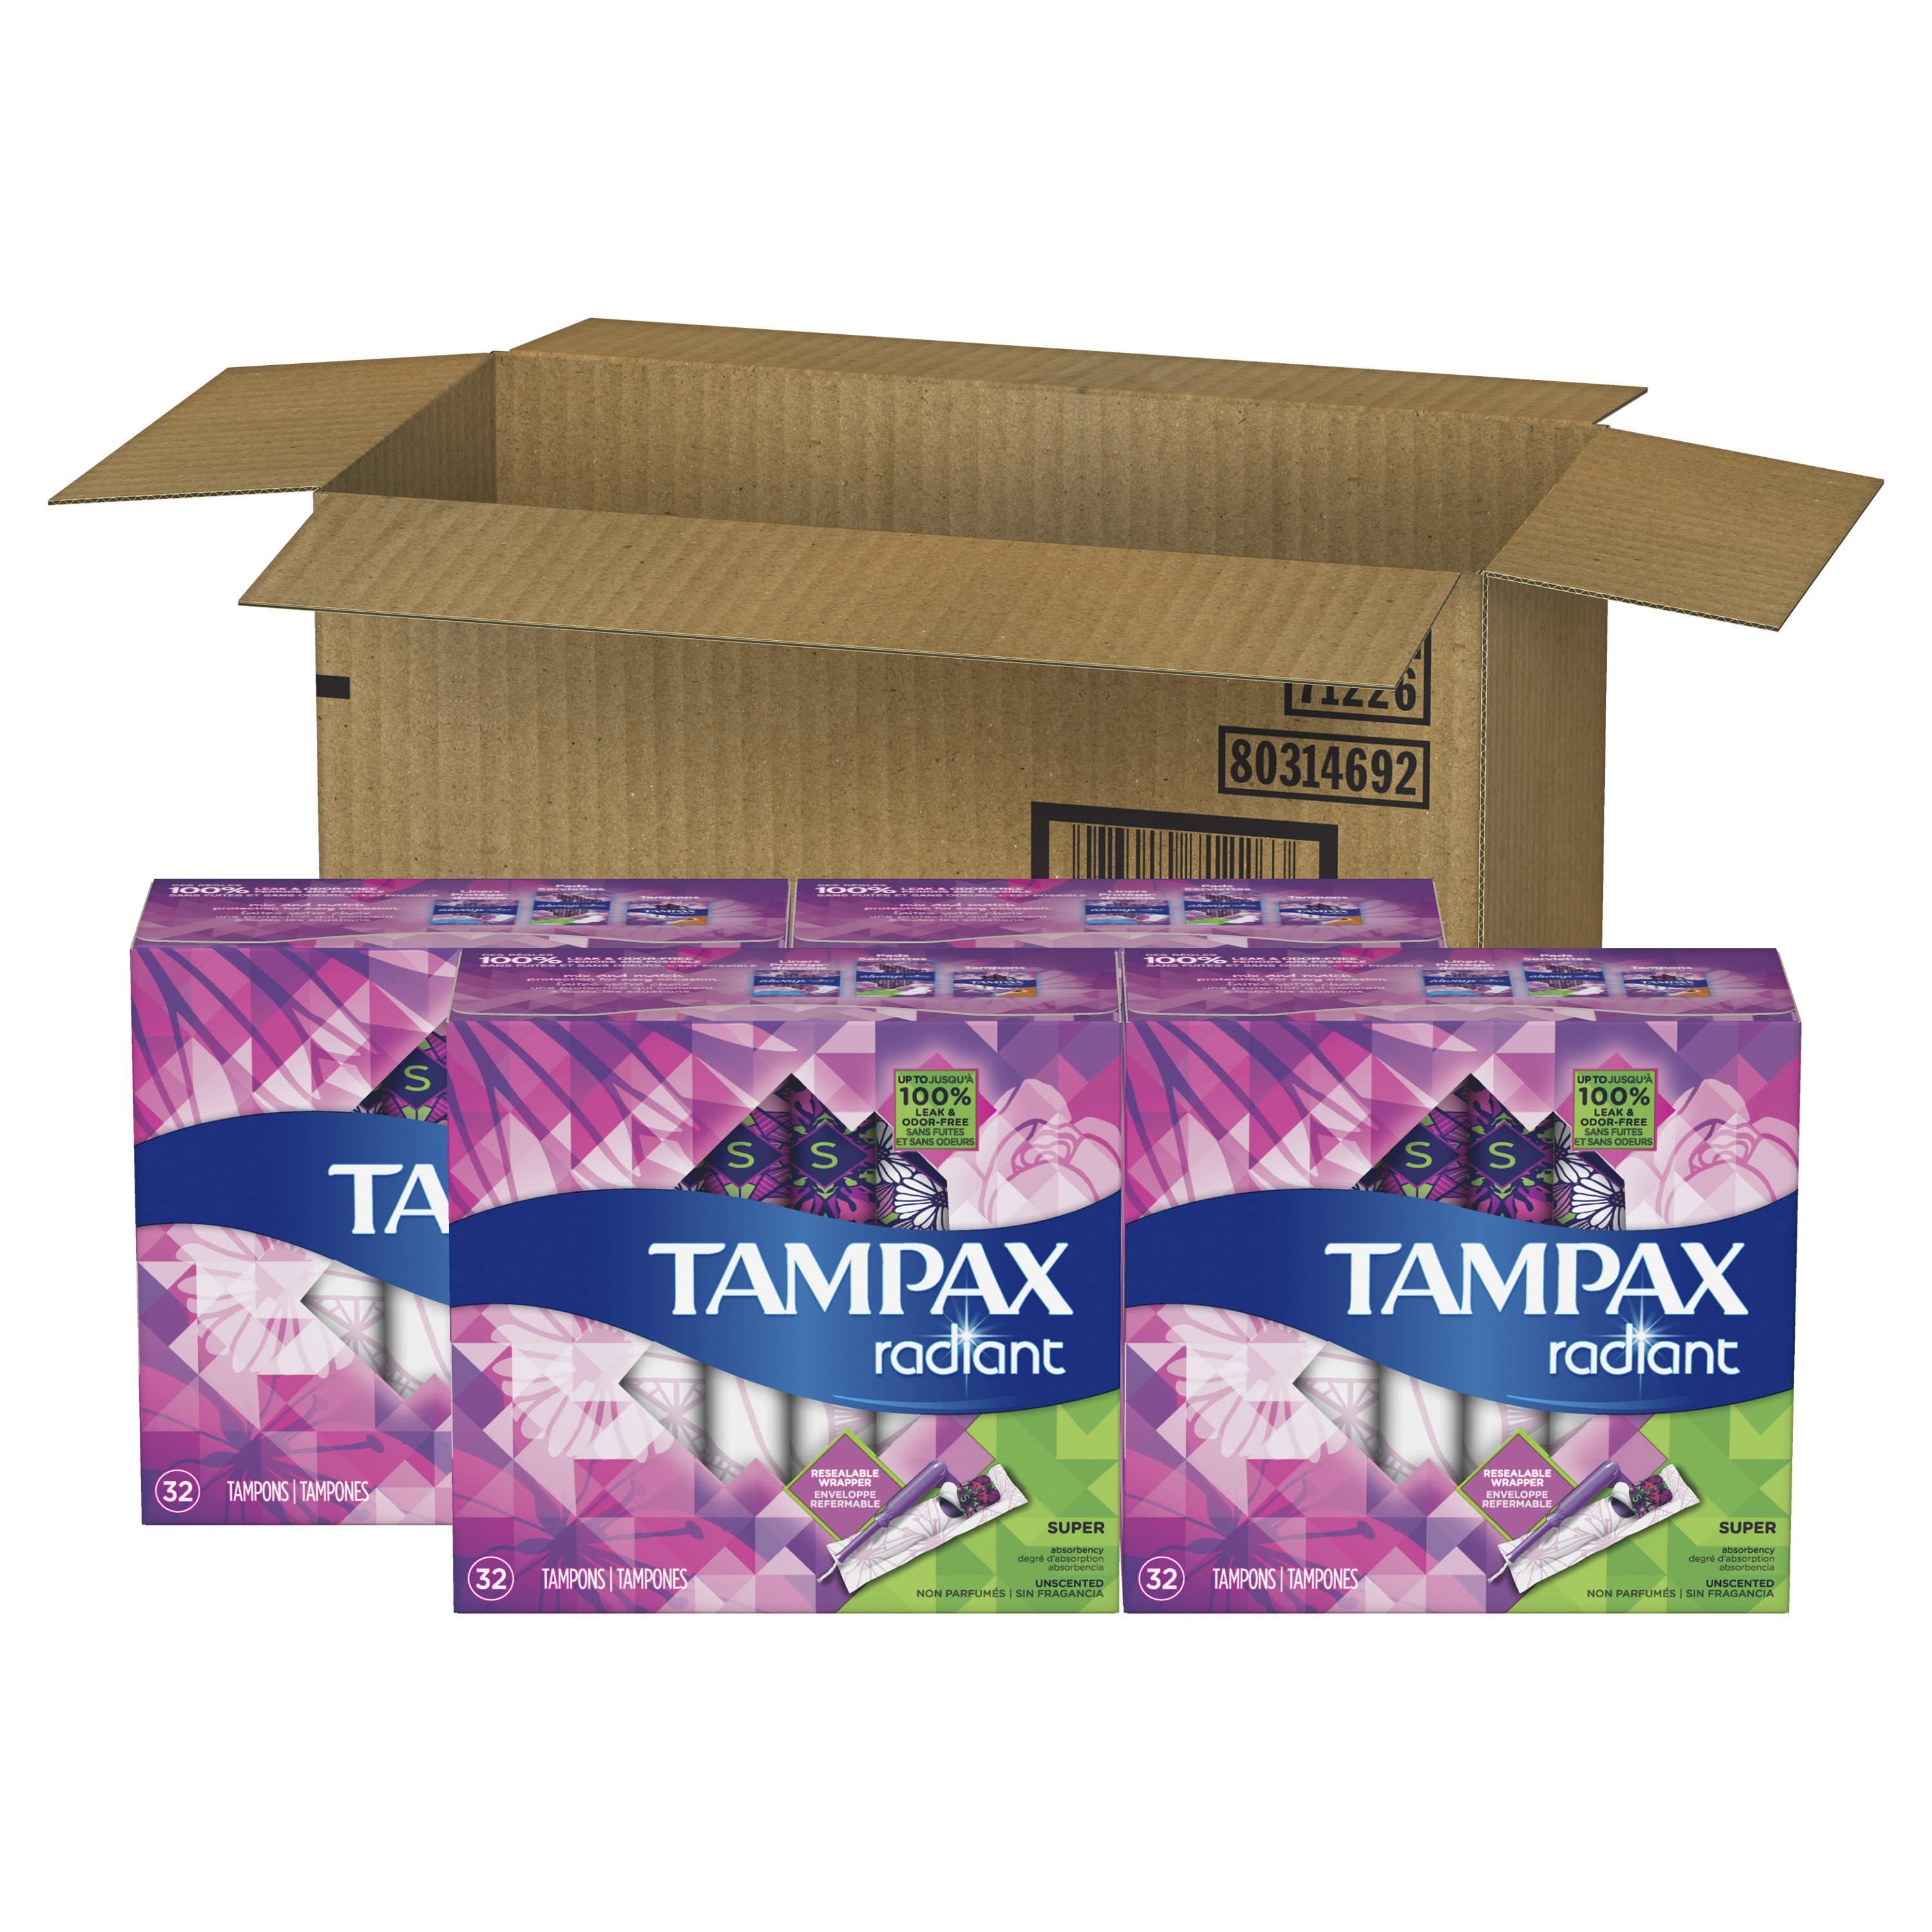 Tampax Radiant Super Plastic Tampons, Unscented, 128 Count